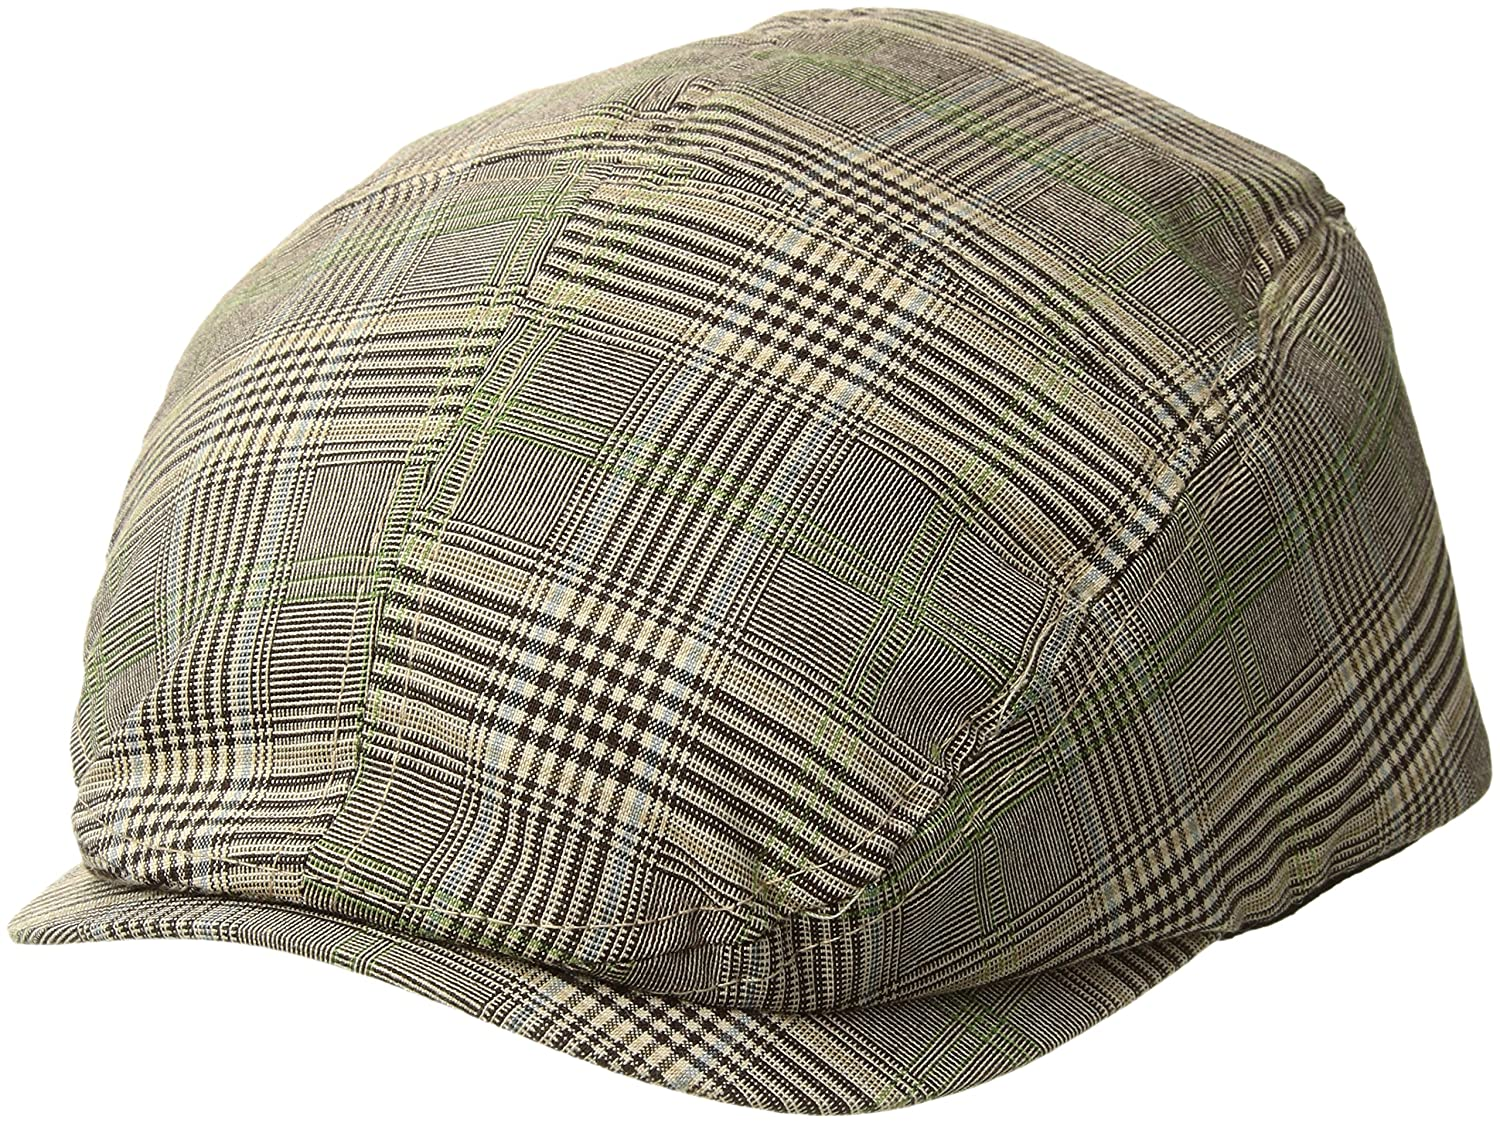 Fashion Plaid Ivy Cap - Brown W10S69F Mega Cap B003E30KVO